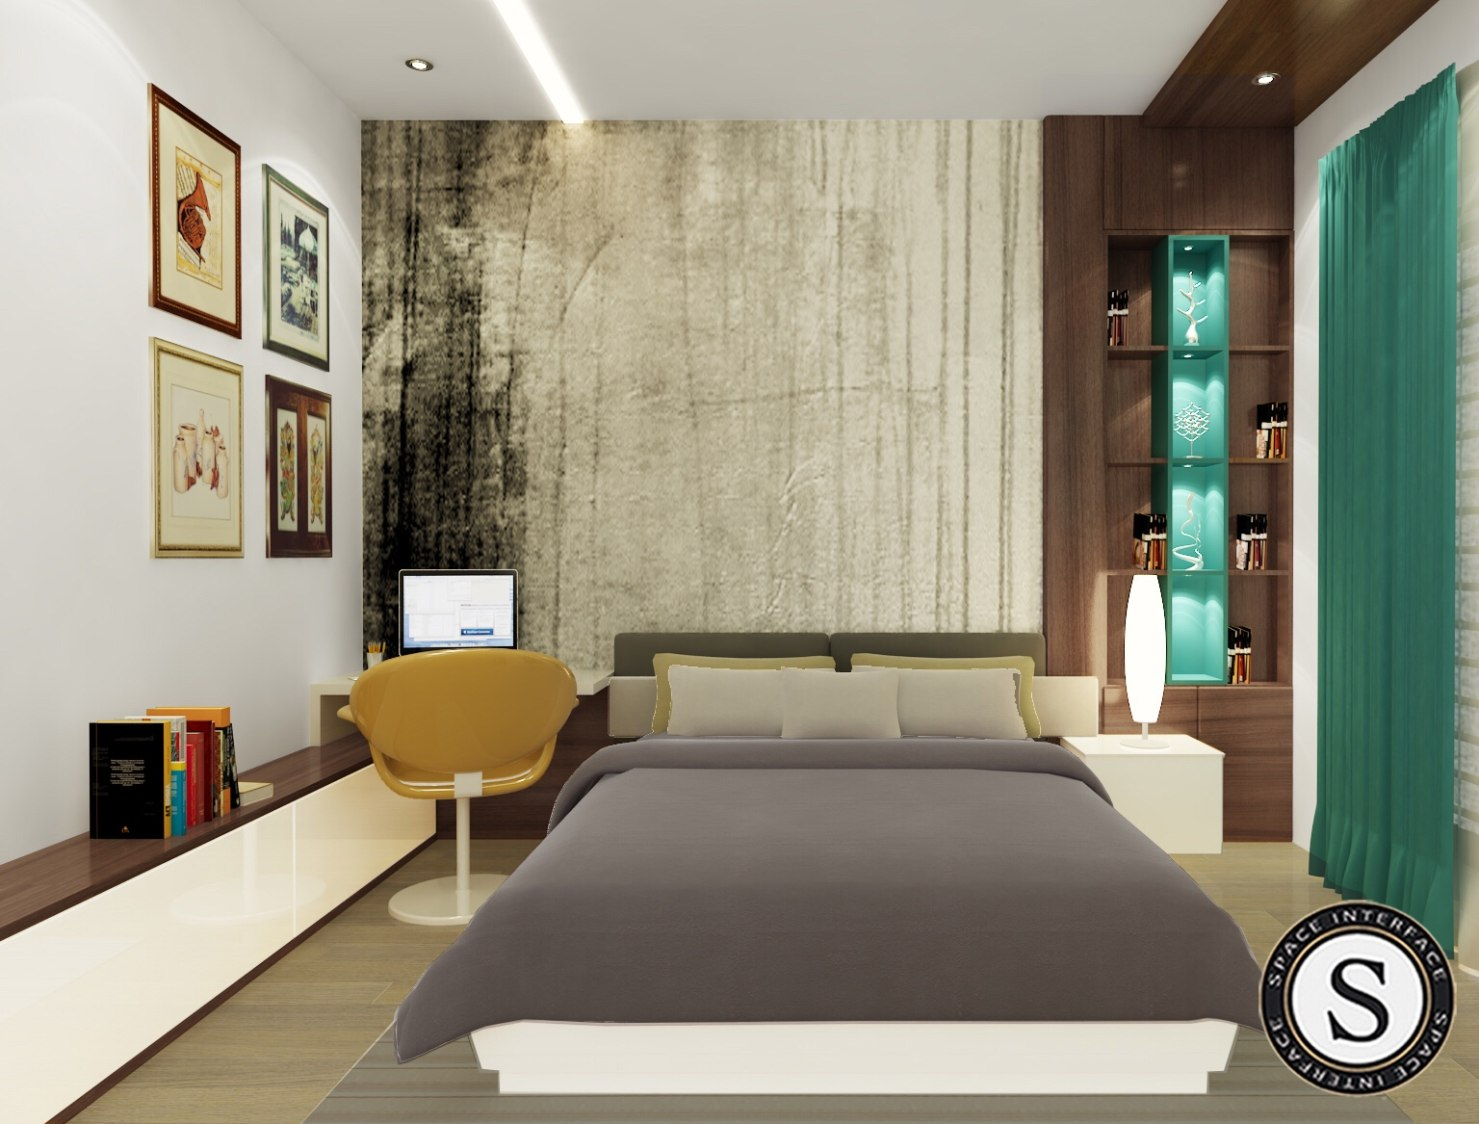 3D Bedroom Design! by Space Interface - Architecture and Interior Design Bedroom | Interior Design Photos & Ideas